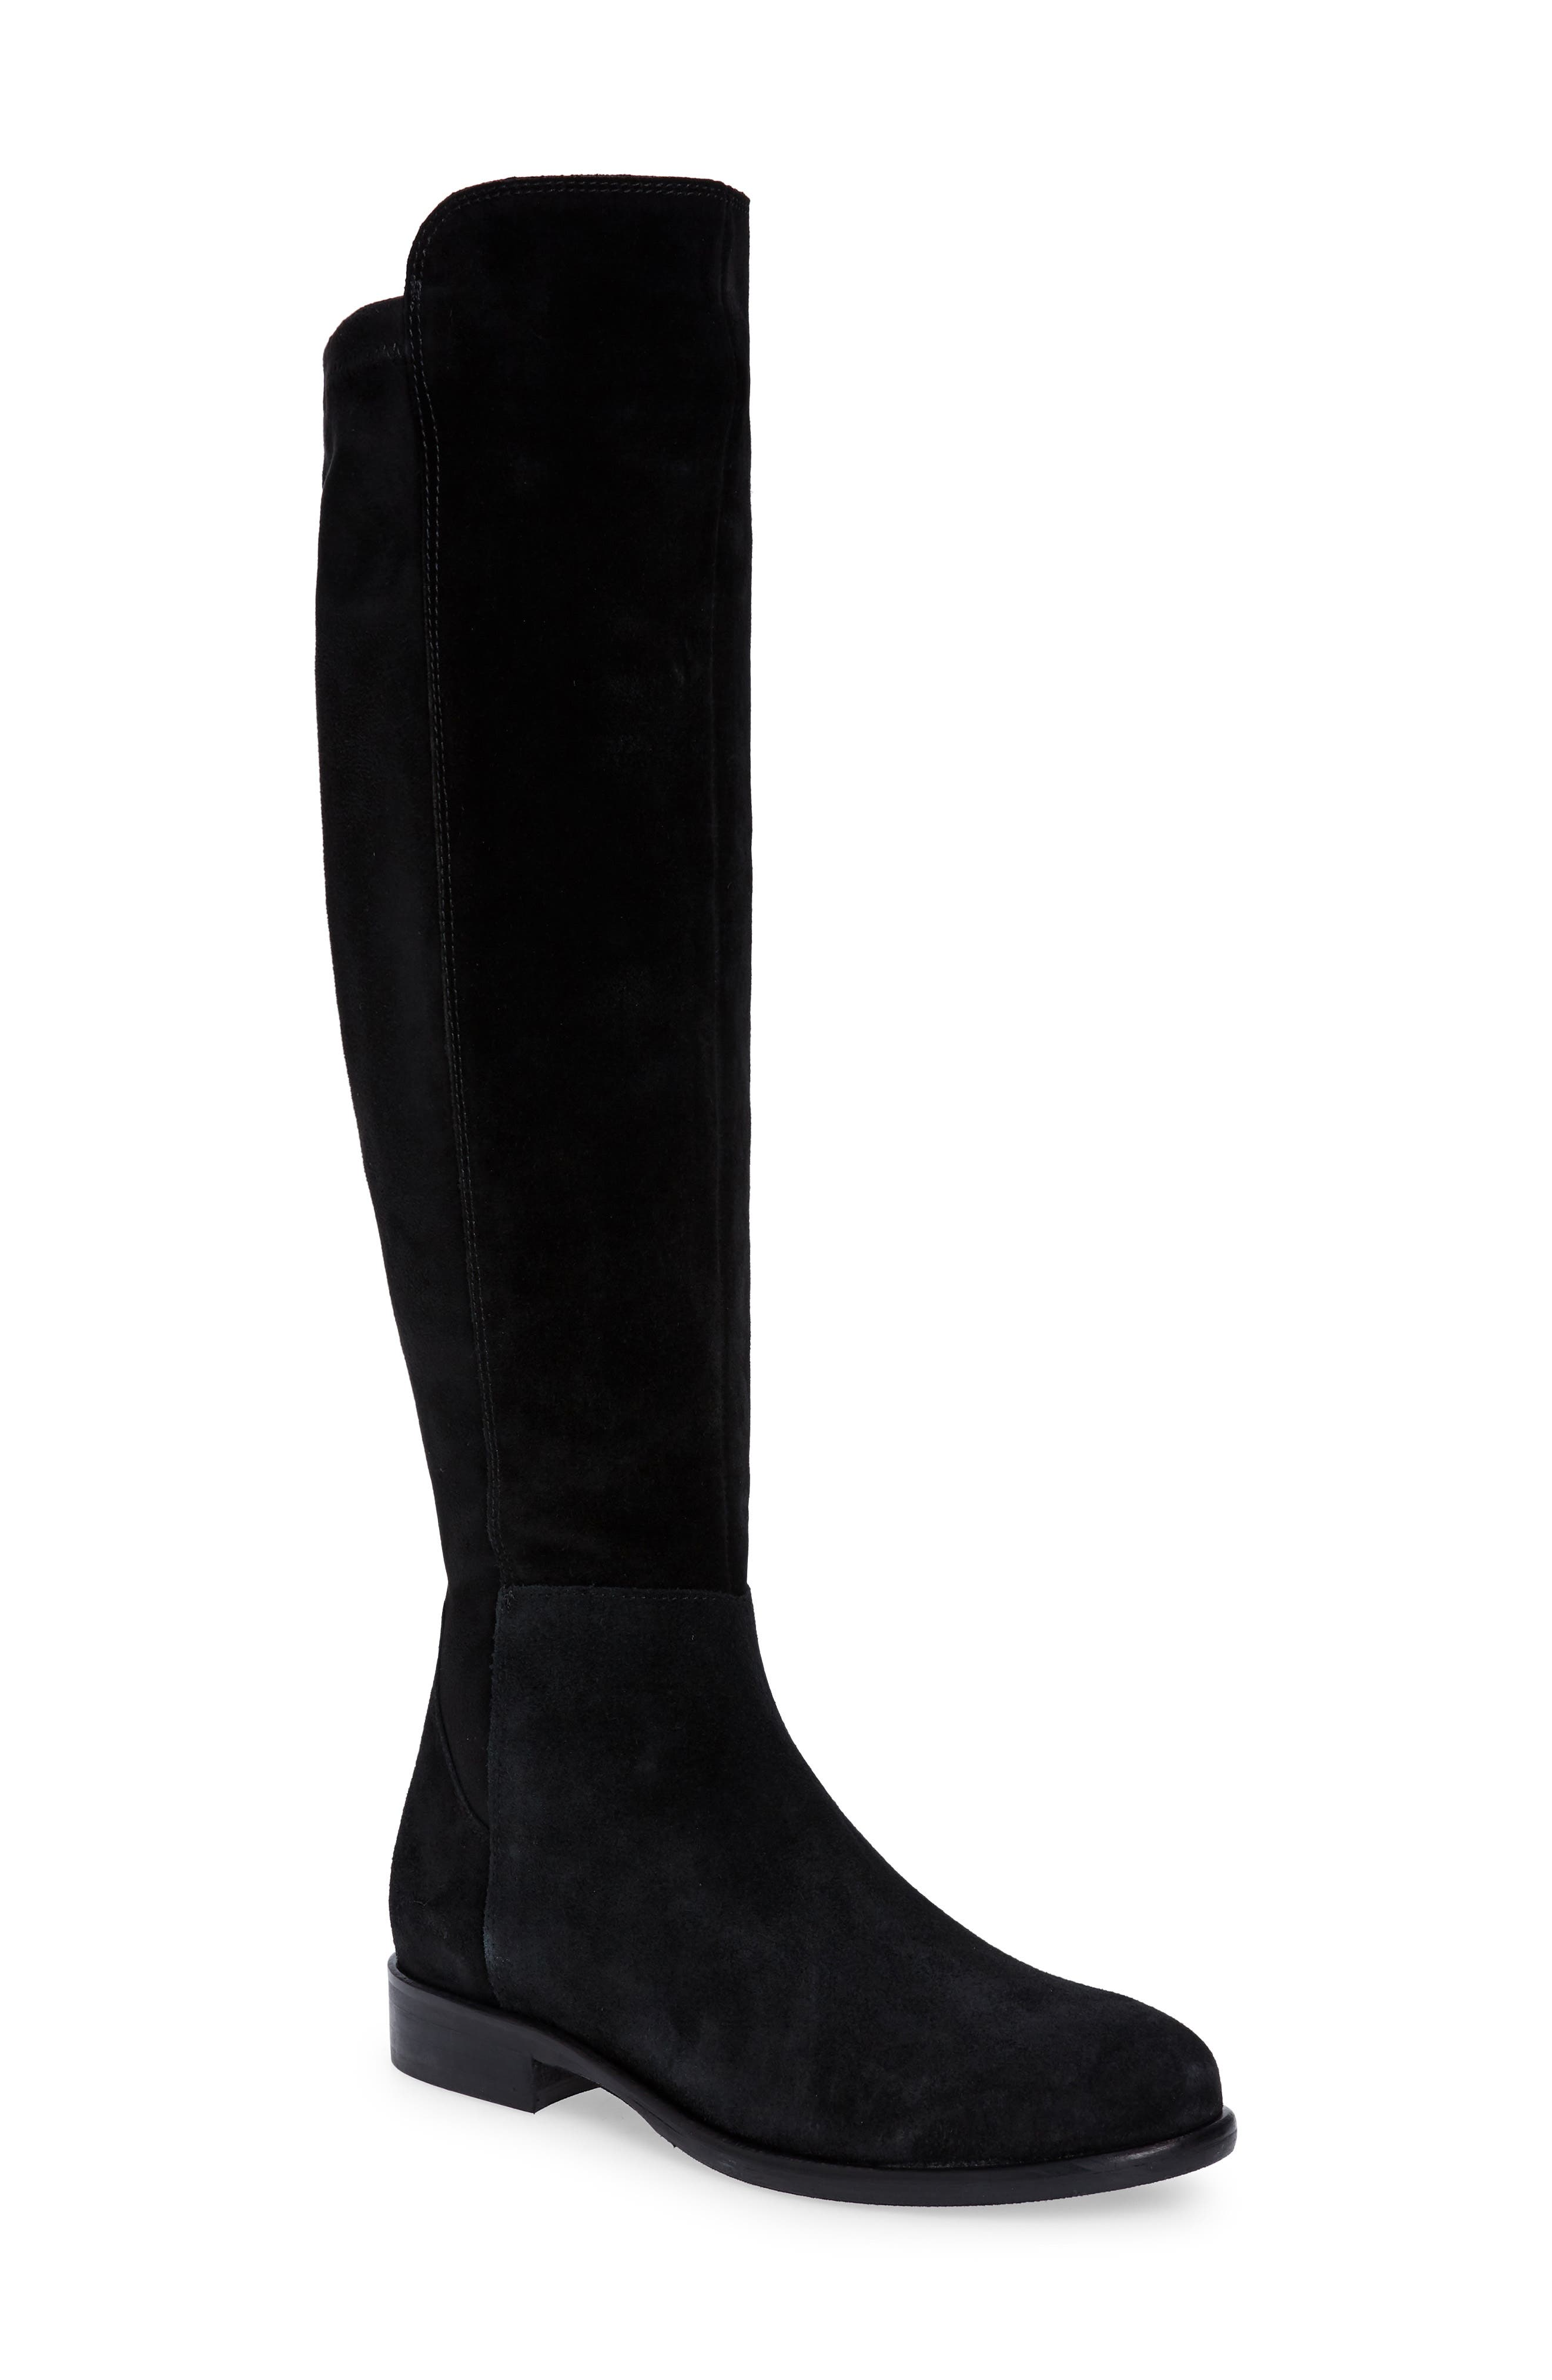 A low-heel boot made in Italy features a stretchy shaft panel for a sleek, slimining profile. Style Name: Cordani Bethany Over The Knee Boot (Women). Style Number: 6102533. Available in stores.